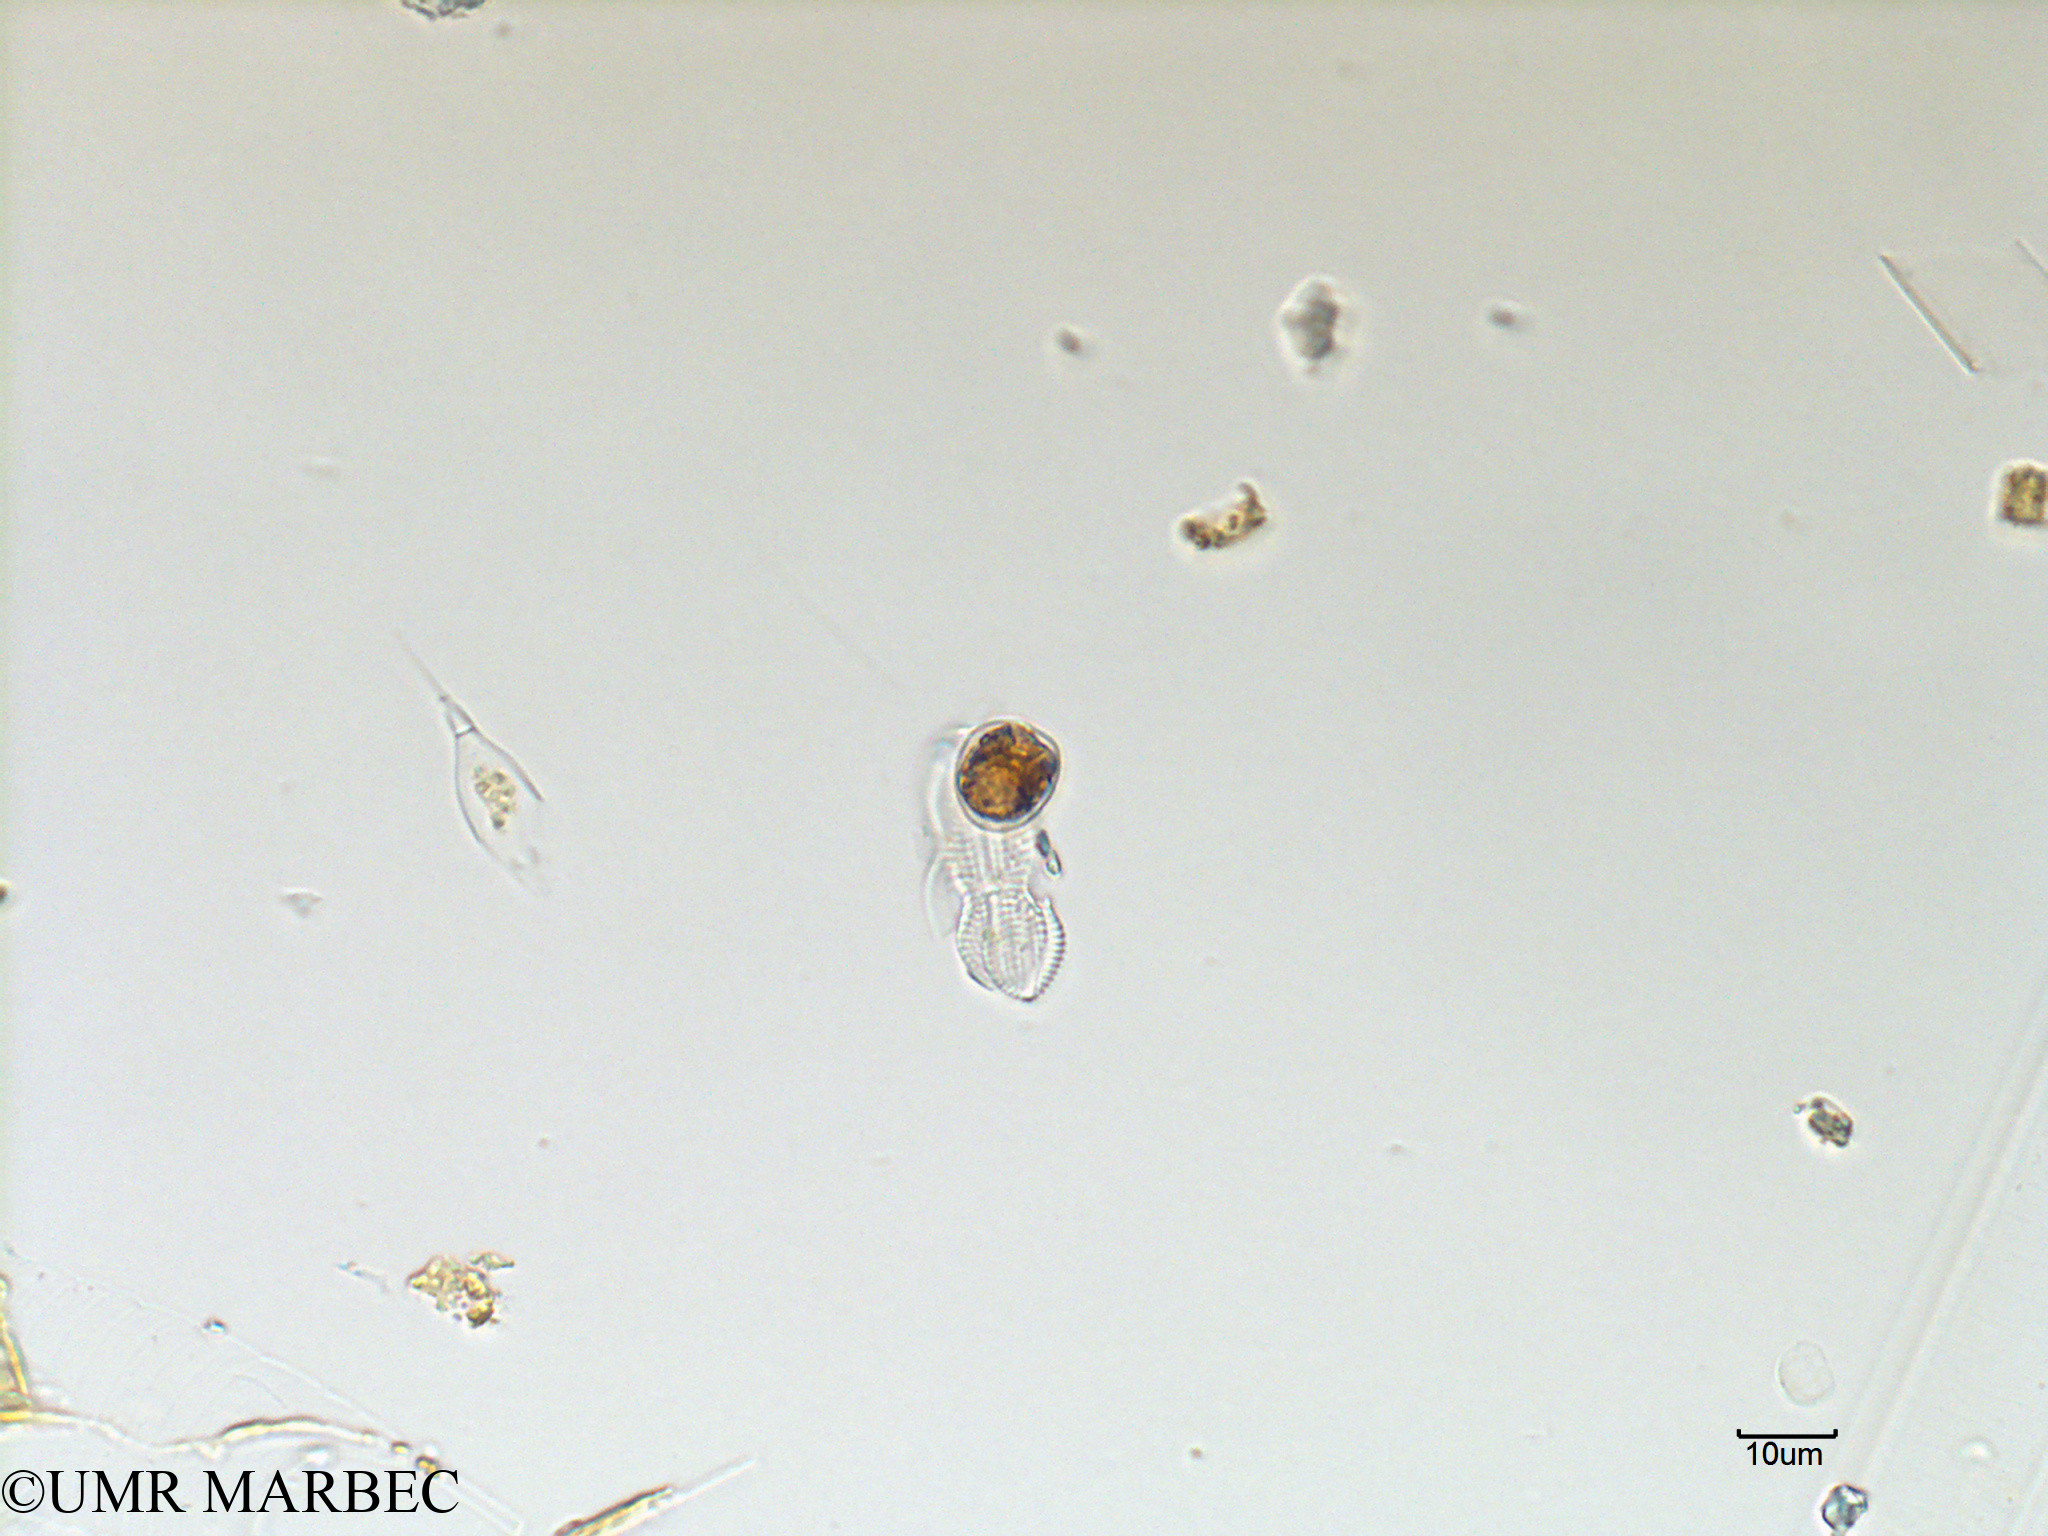 phyto/Scattered_Islands/mayotte_lagoon/SIREME May 2016/Prorocentrum cordatum (MAY3_Proro cordatum).tif(copy).jpg